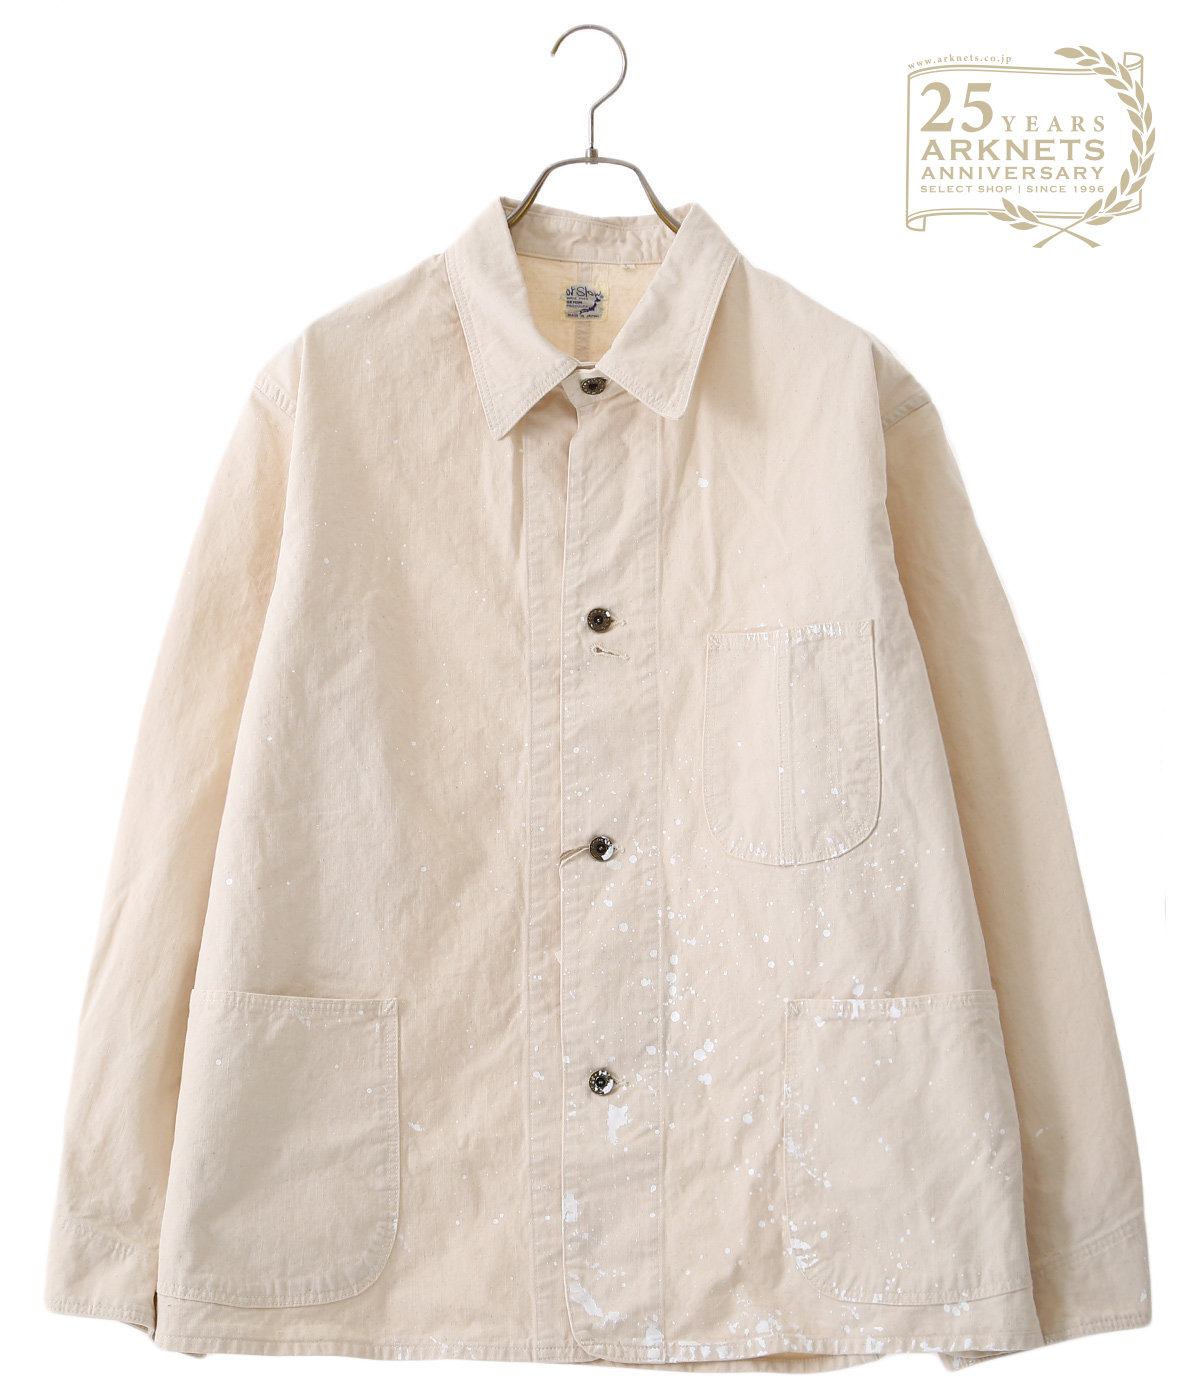 【ONLY ARK】別注 MEN'S 40's COVERALL ECRU+PAINT